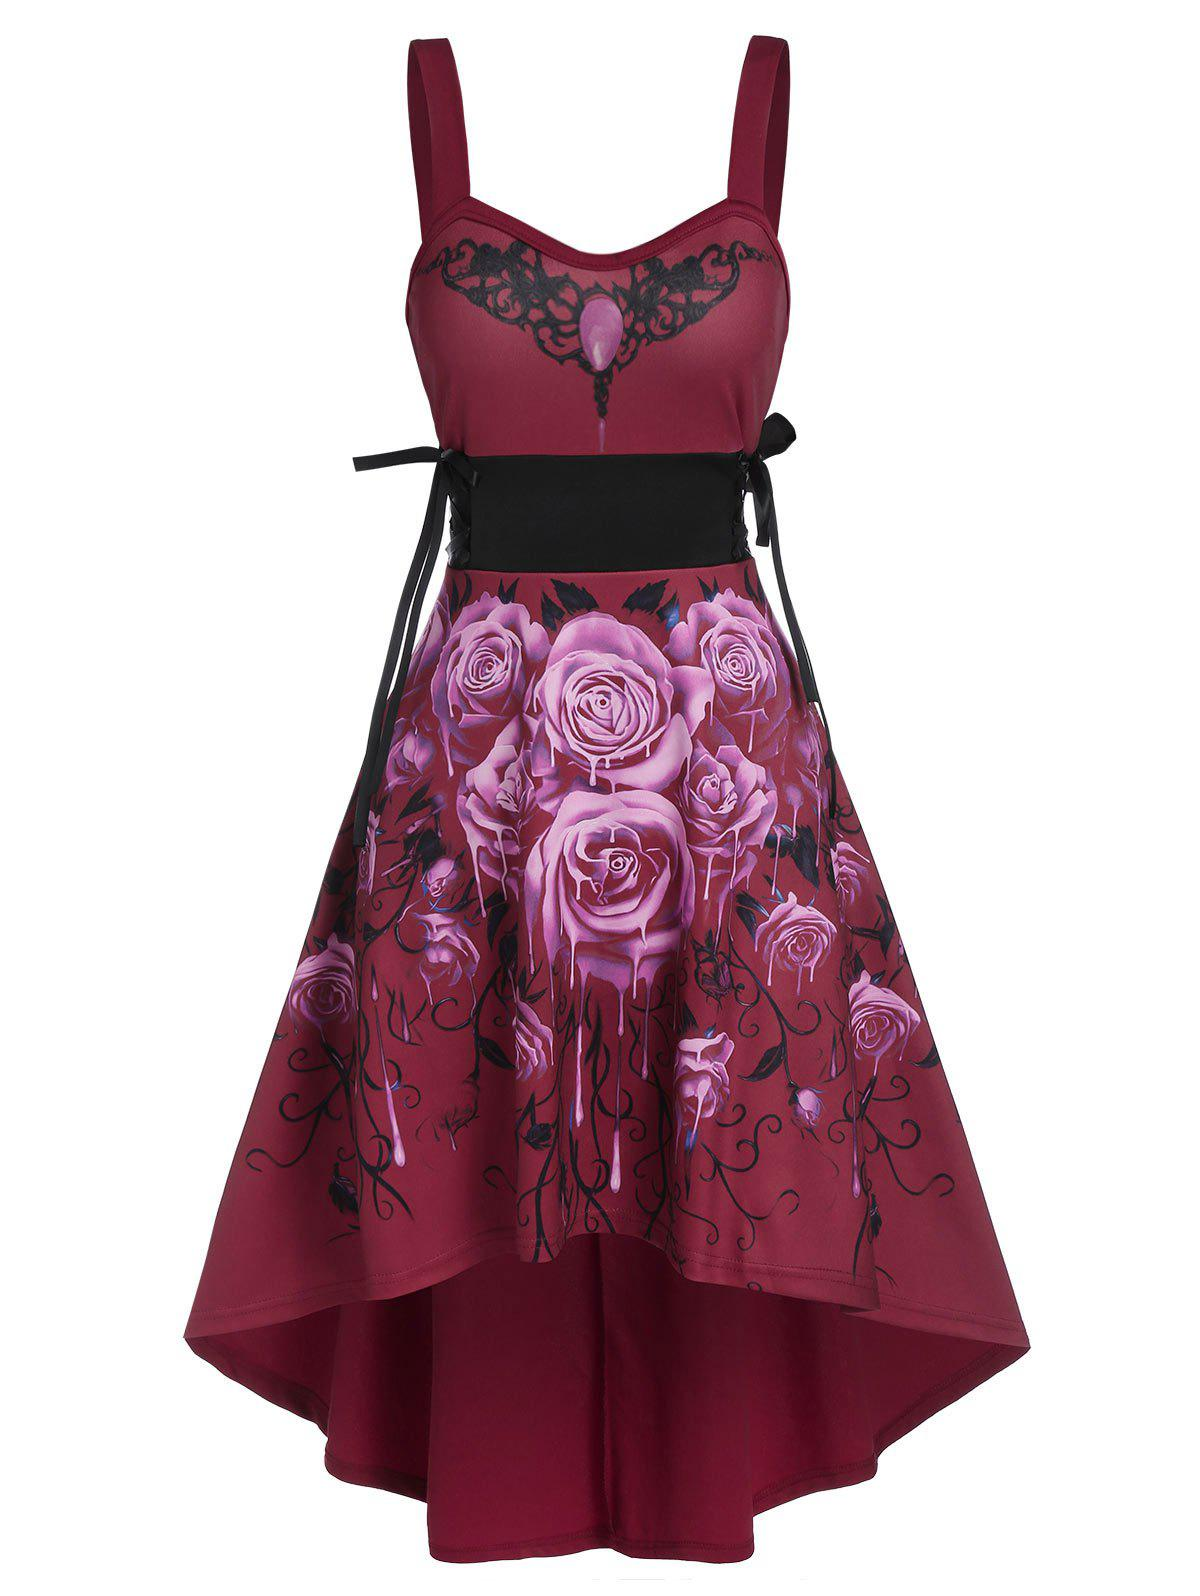 Sleeveless Flower Print Lace-up High Low Gothic Dress - RED WINE 2XL